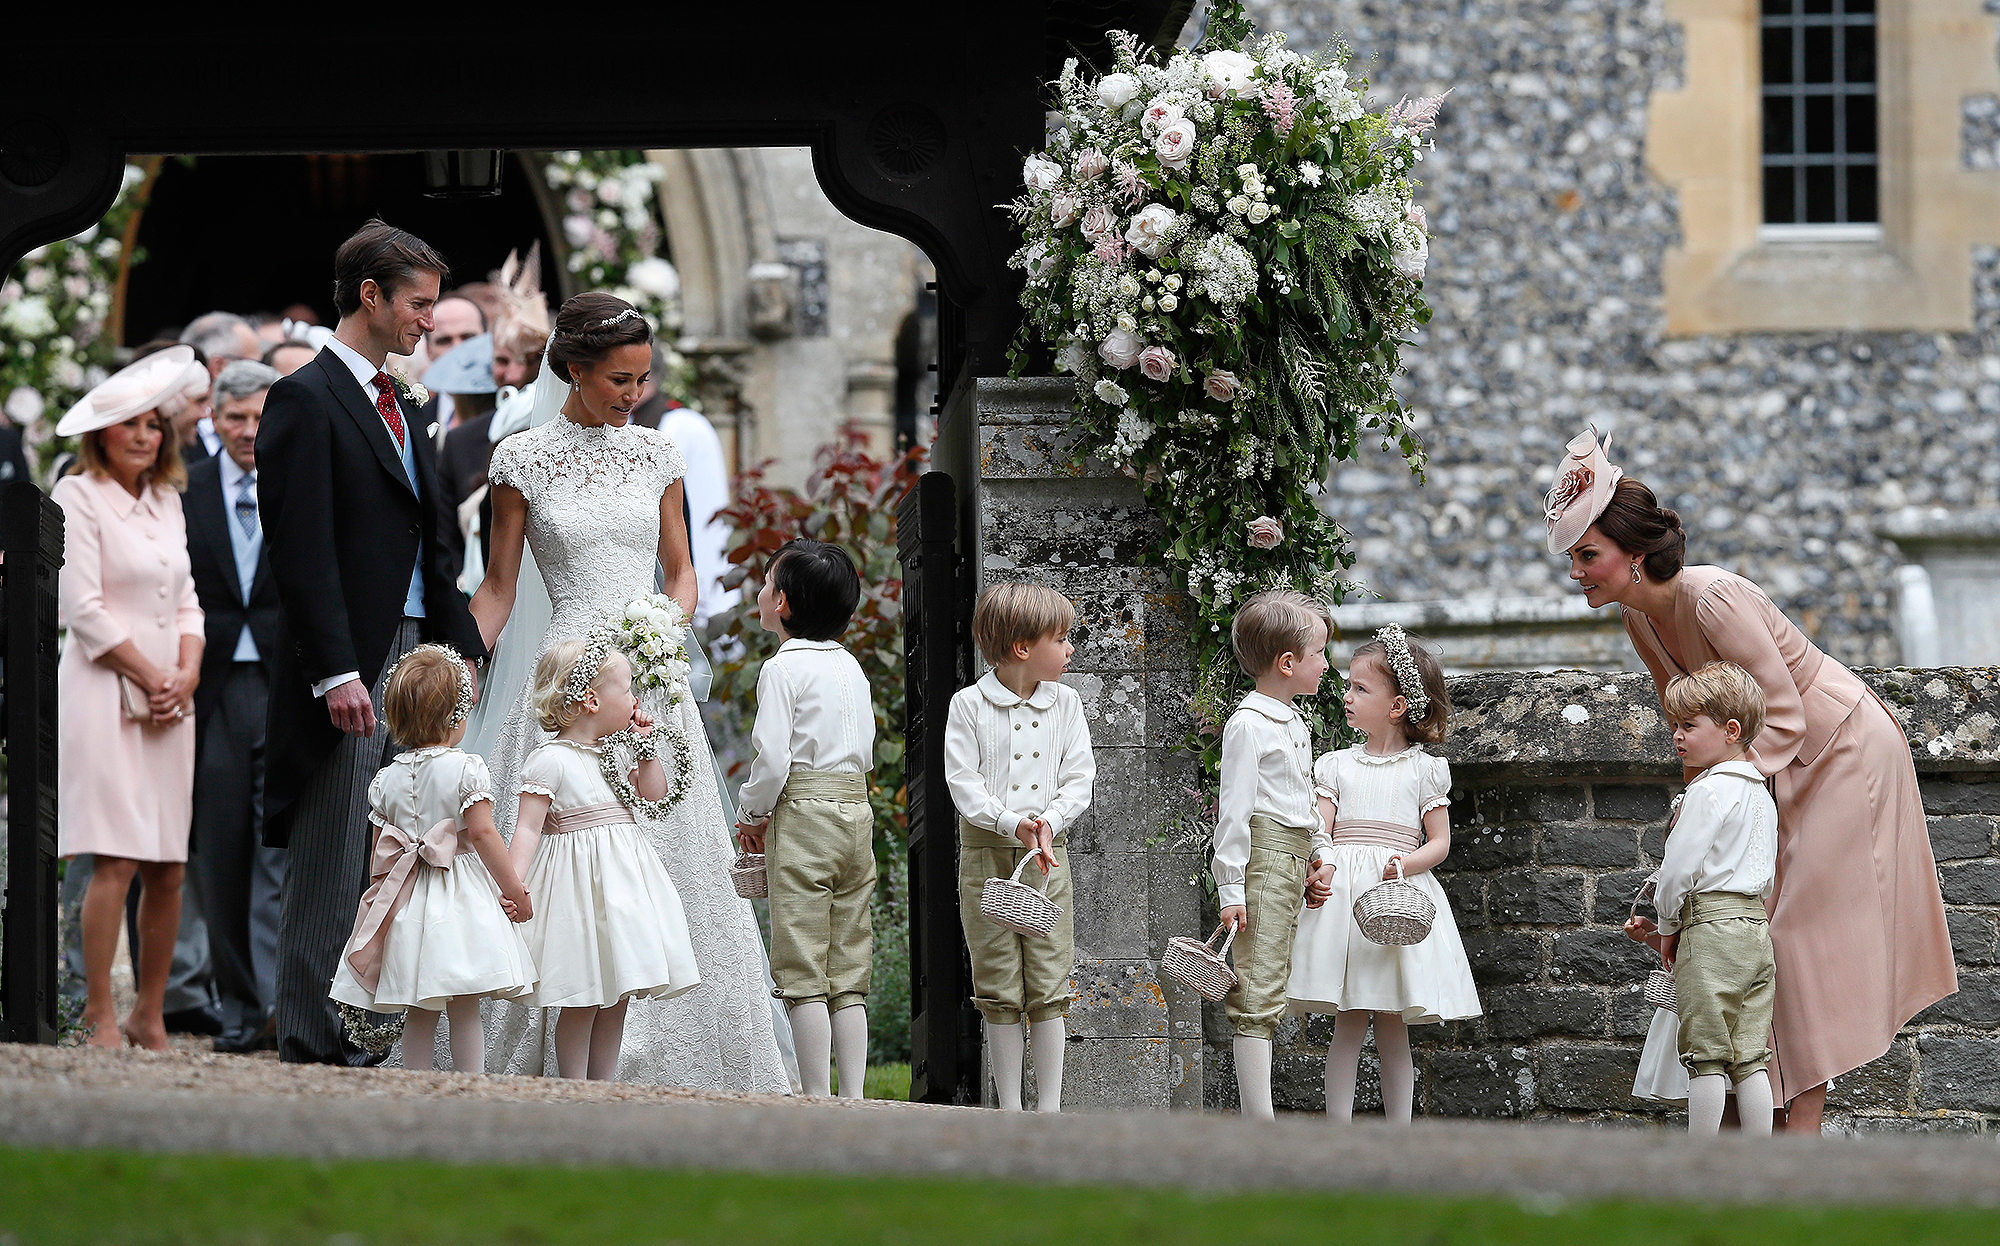 Prince George and Princess Charlotte stayed close to mom Kate after the ceremony